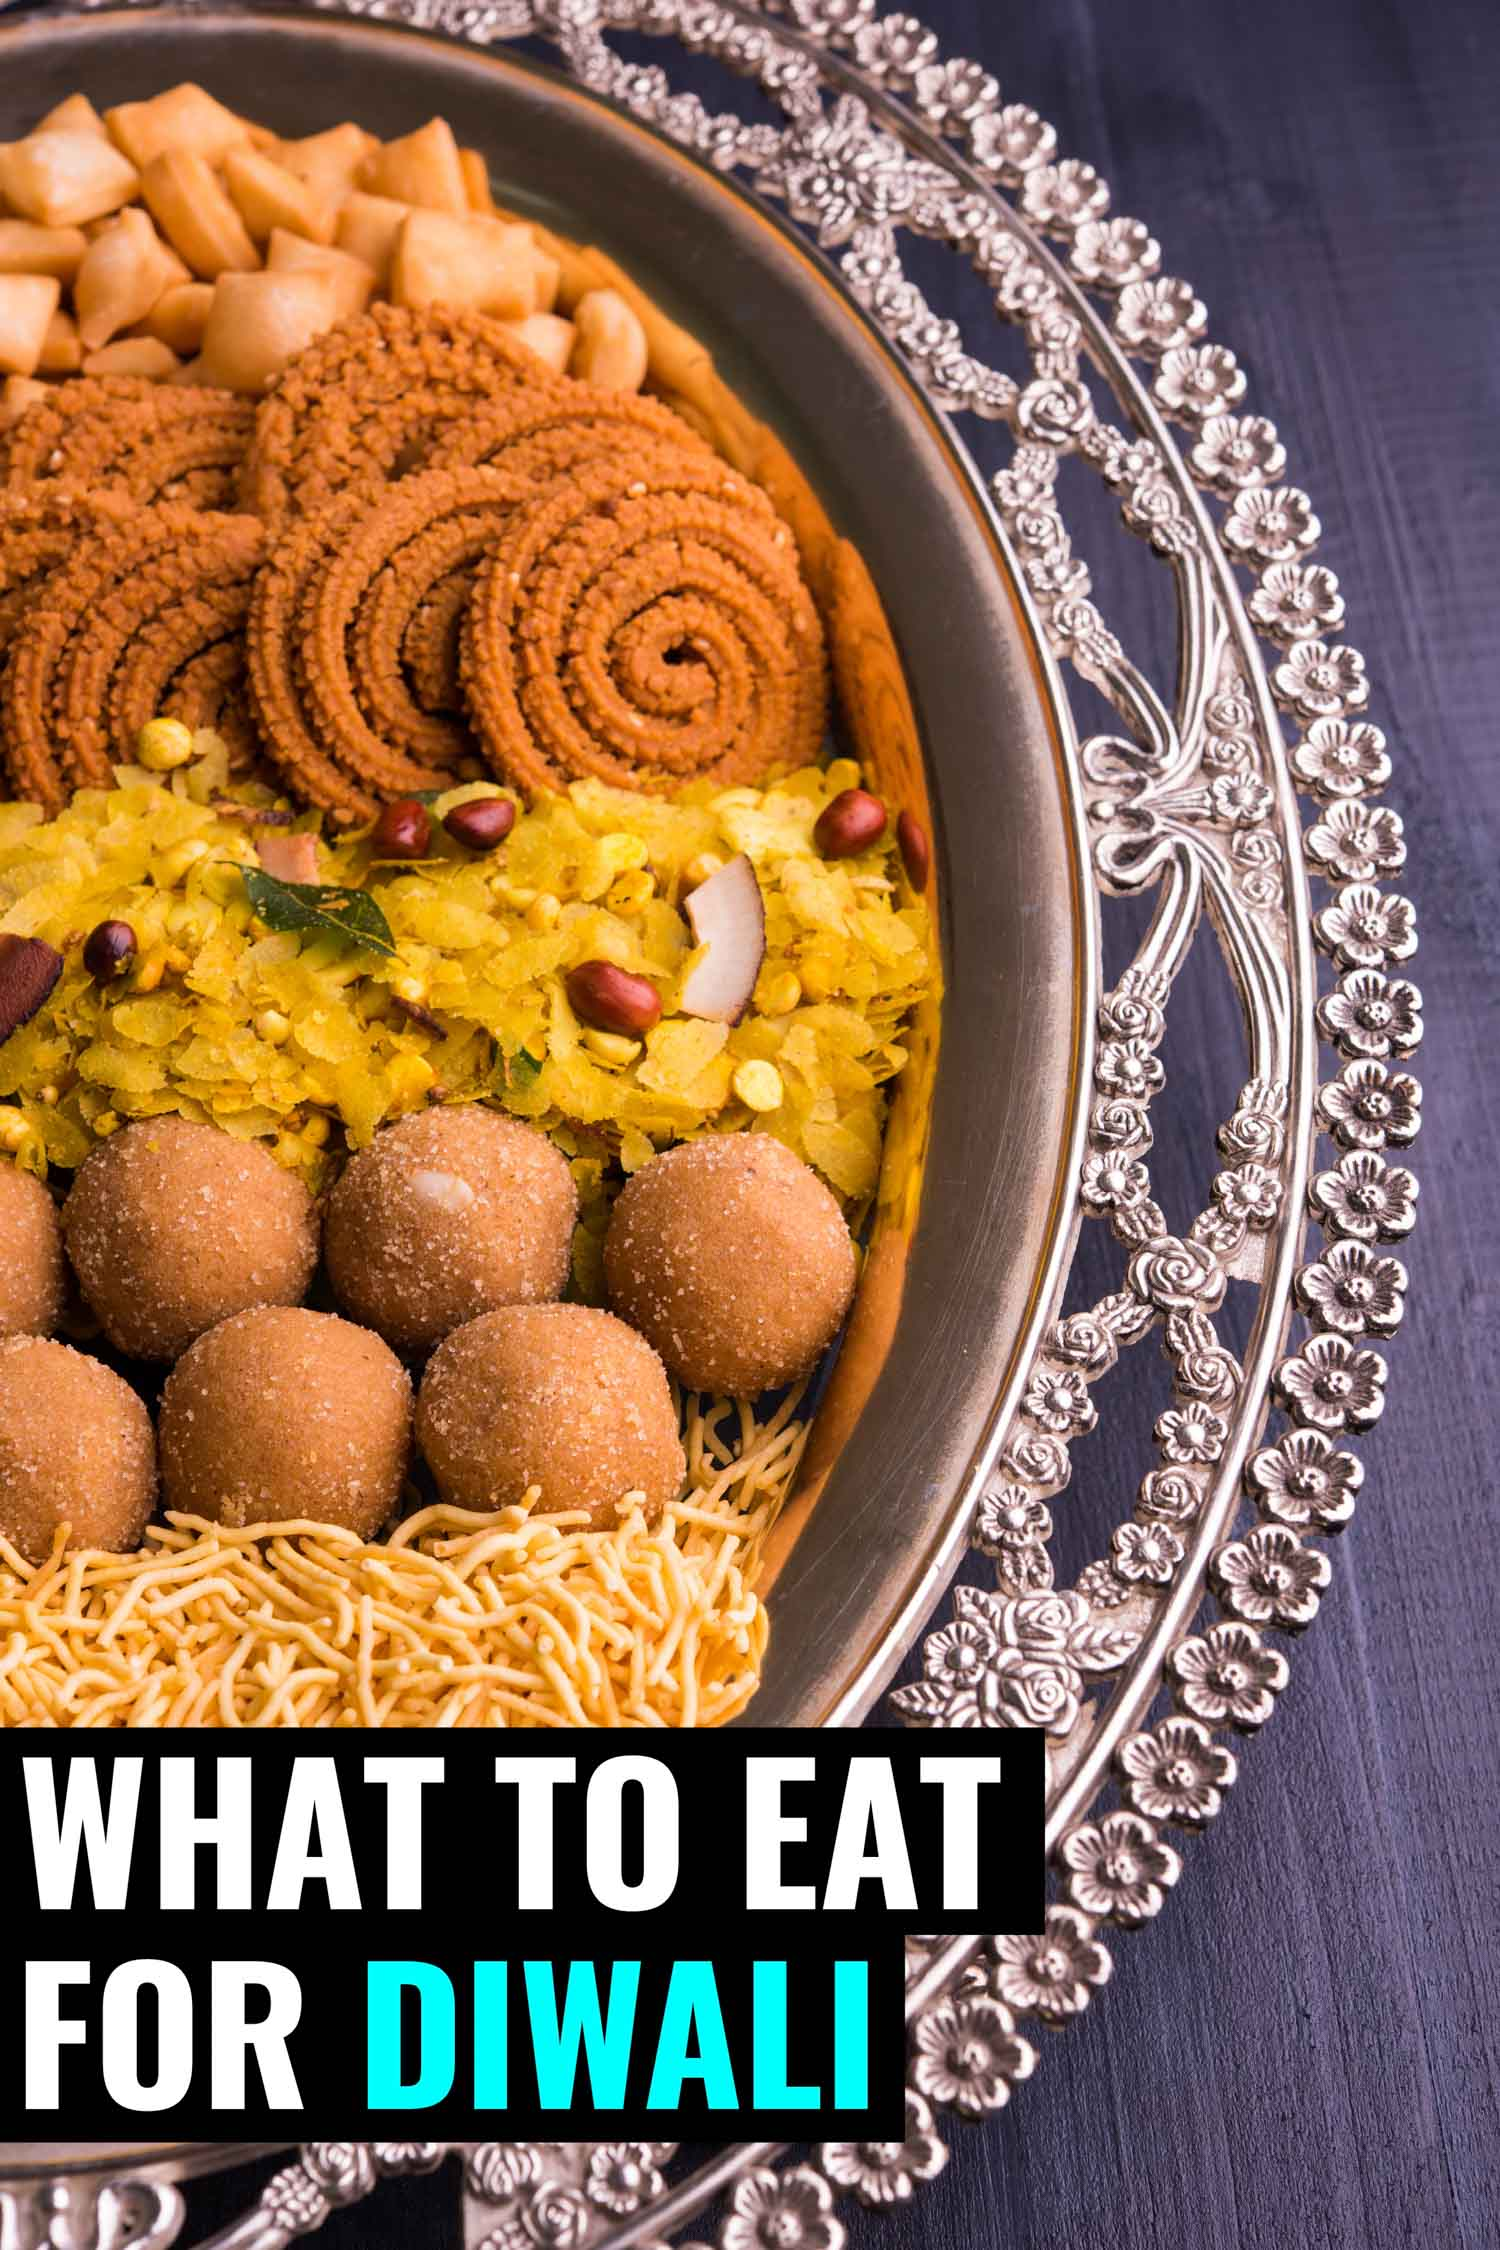 What to eat for Diwali